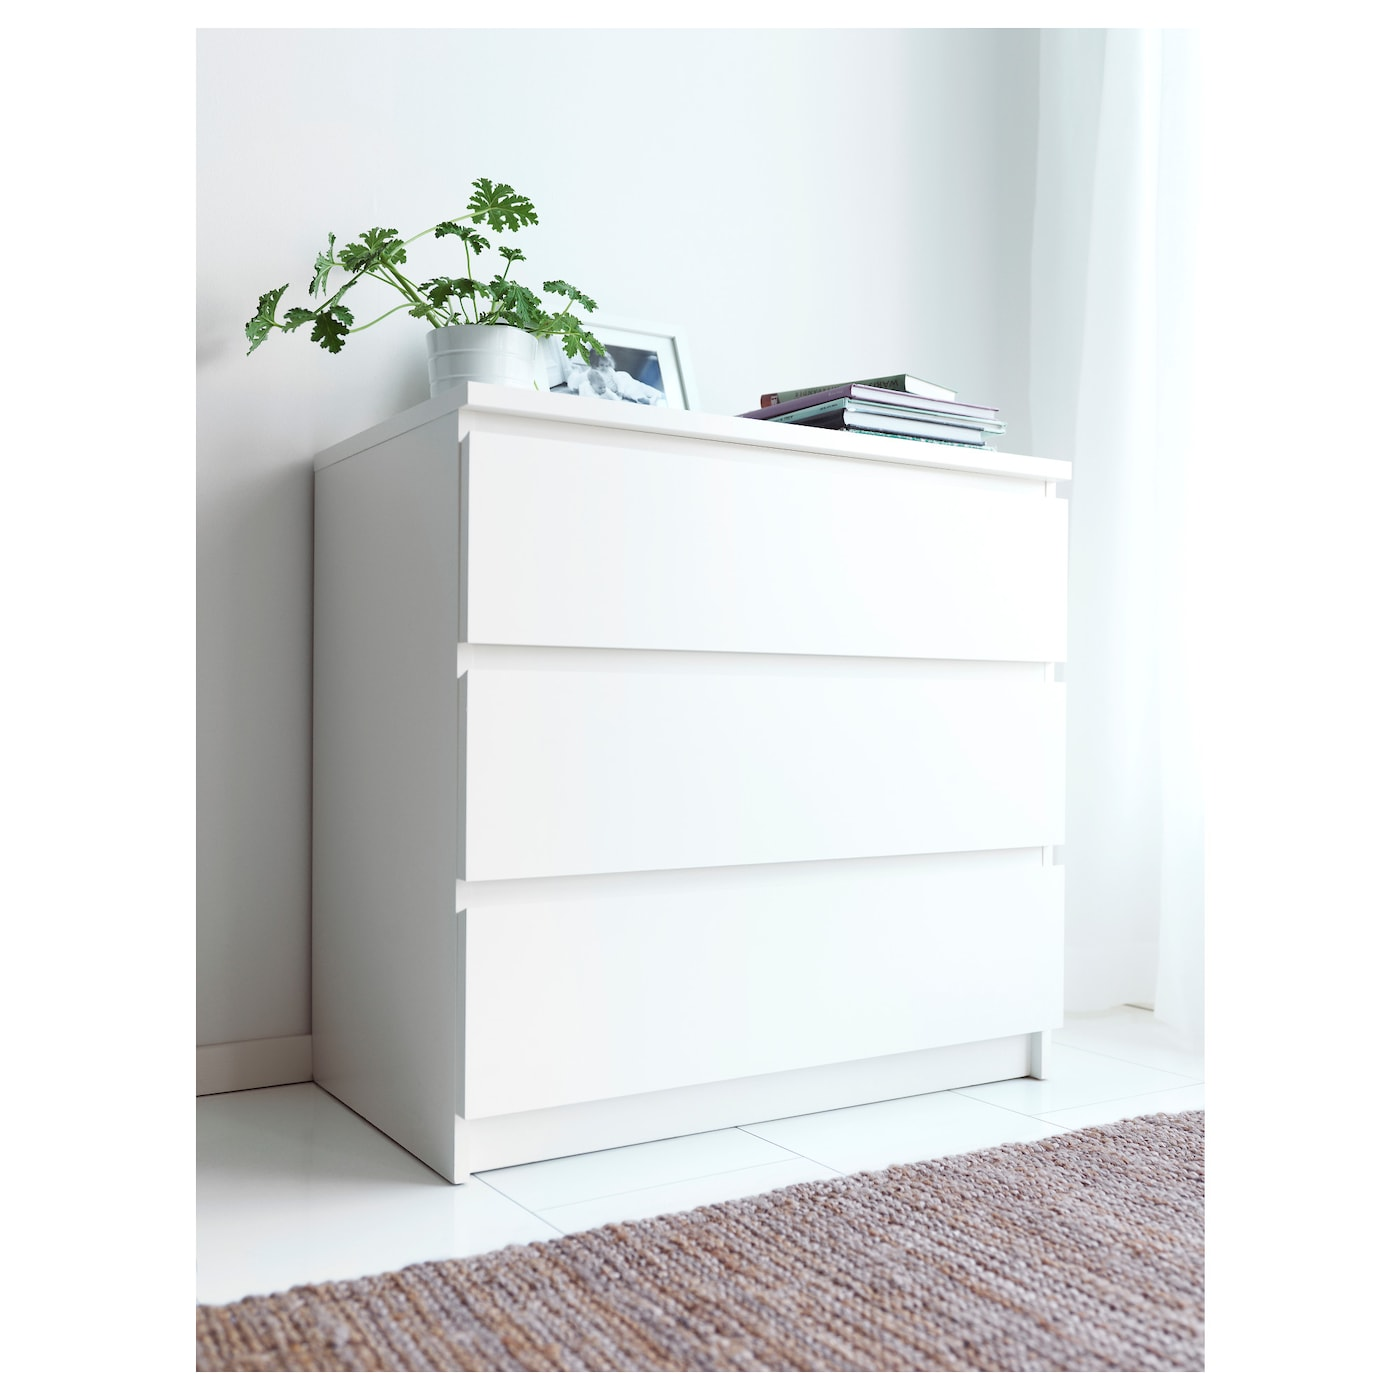 Ikea Malm Chest Of 3 Drawers Smooth Running With Pull Out Stop